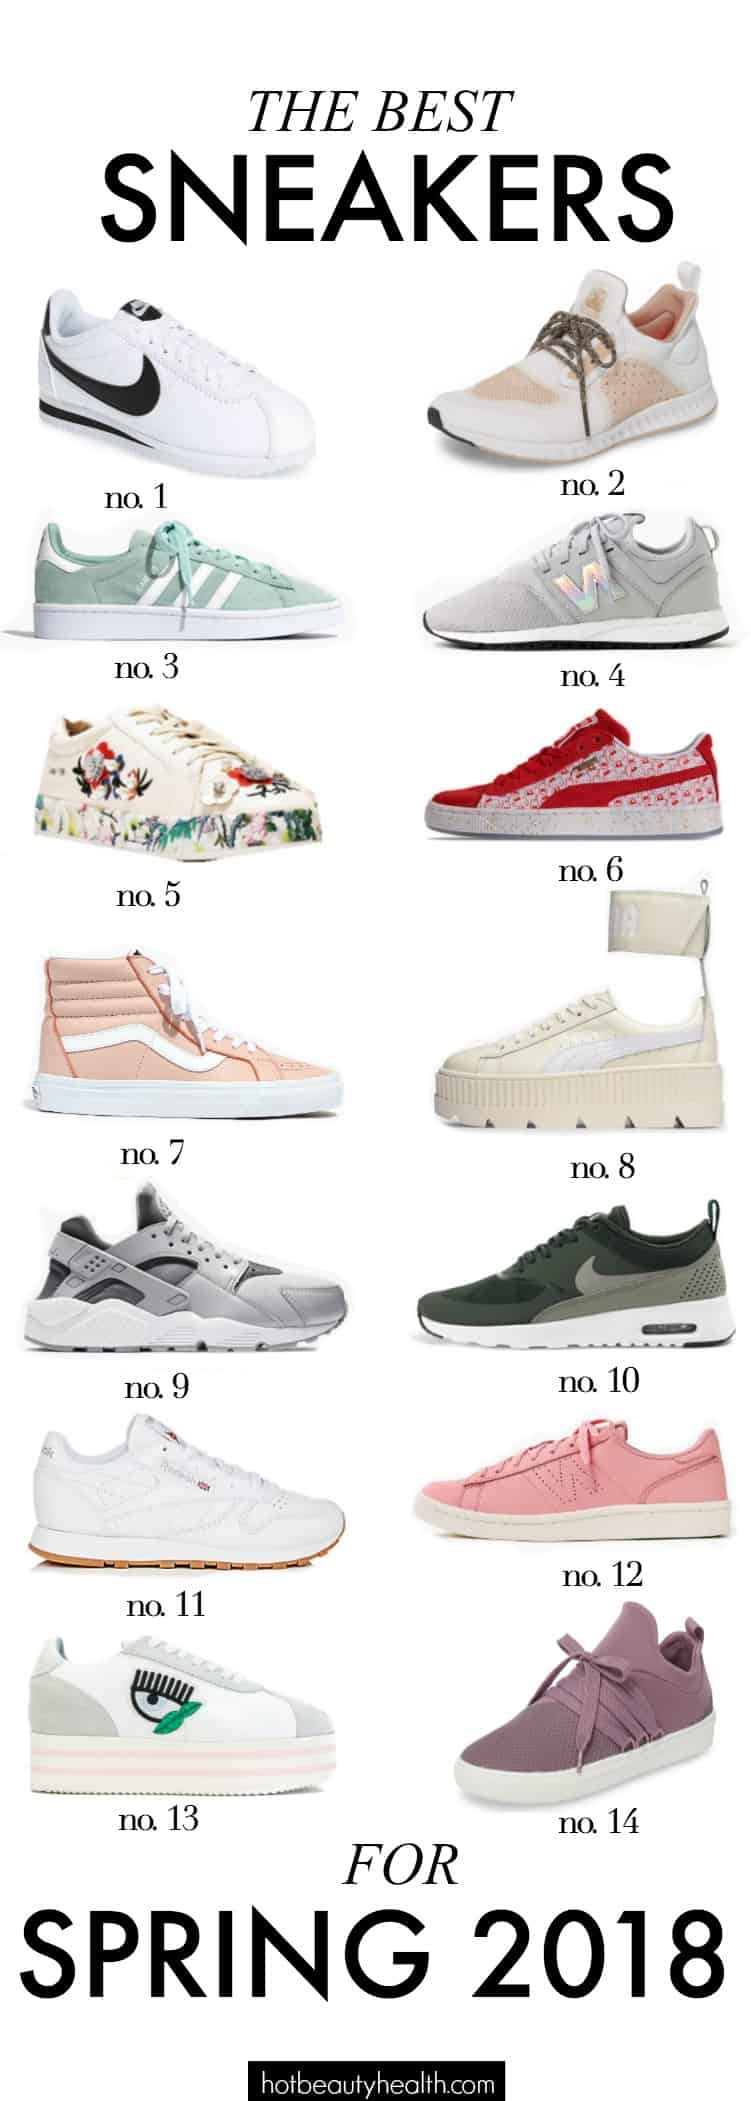 Time to step your shoe game up with a fresh pair of sneakers! From minimal chic to statement-making shoes, you'll find numerous fashion styles to help you create a simple yet trendy spring outfit. Check out my list of the best women sneakers for spring 2018 from Nike, Adidas, Puma, New Balance, and more!